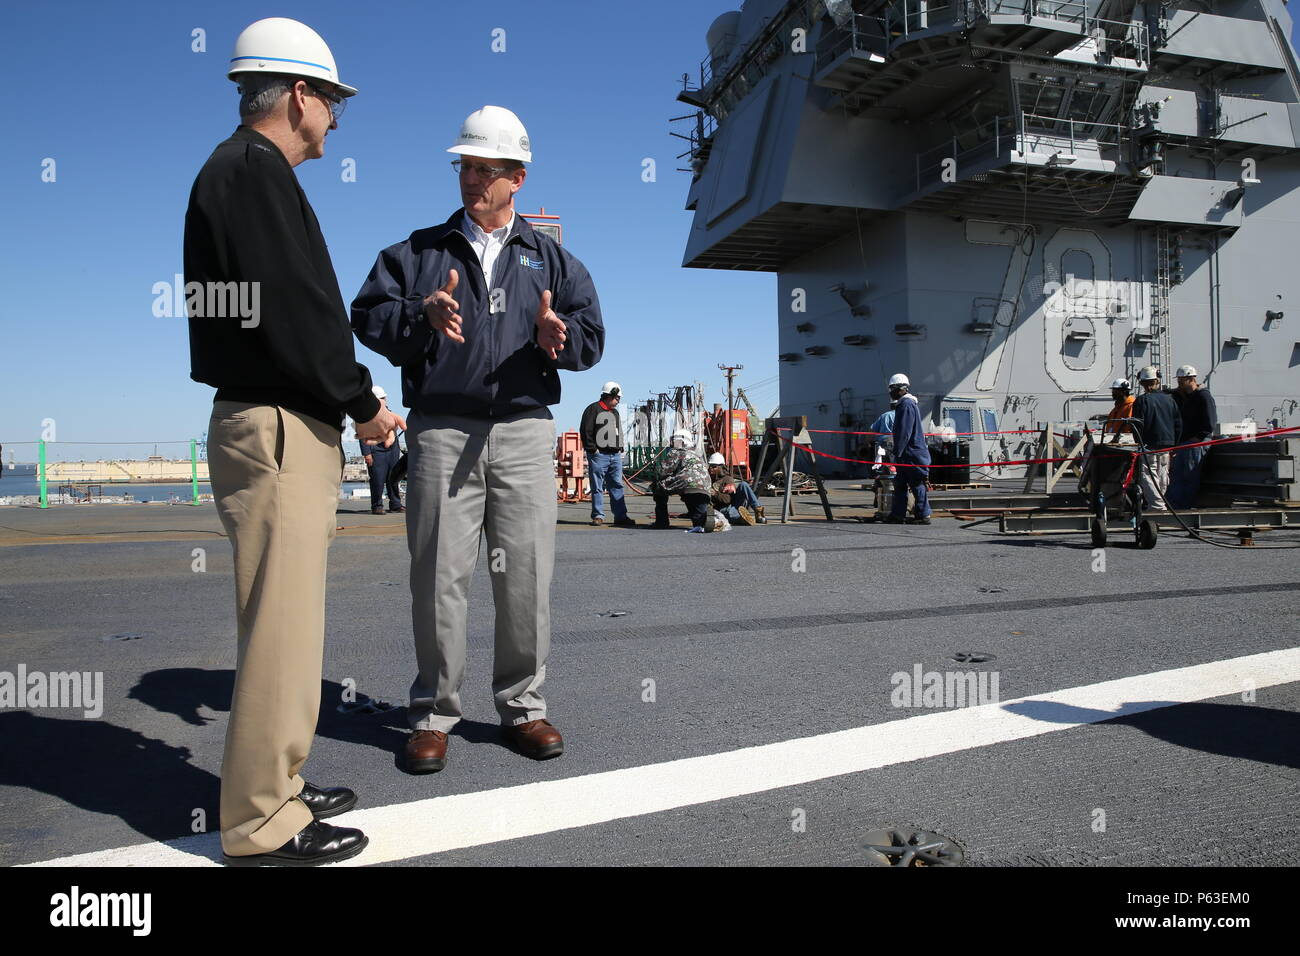 NEWPORT NEWS, Va. (Apr 20, 2016) -- Rear Adm. Thomas Moore takes a tour of Pre-Commissioning Unit Gerald R. Ford (CVN 78) with super intendants of Huntington Ingalls Industries Newport News Shipbuilding (HIINNS). Ford is the first of a new class of aircraft carriers currently under construction by HIINNS. (U.S. Navy photo by Mass Communication Specialist Seaman Apprentice Connor Loessin/Released) - Stock Image